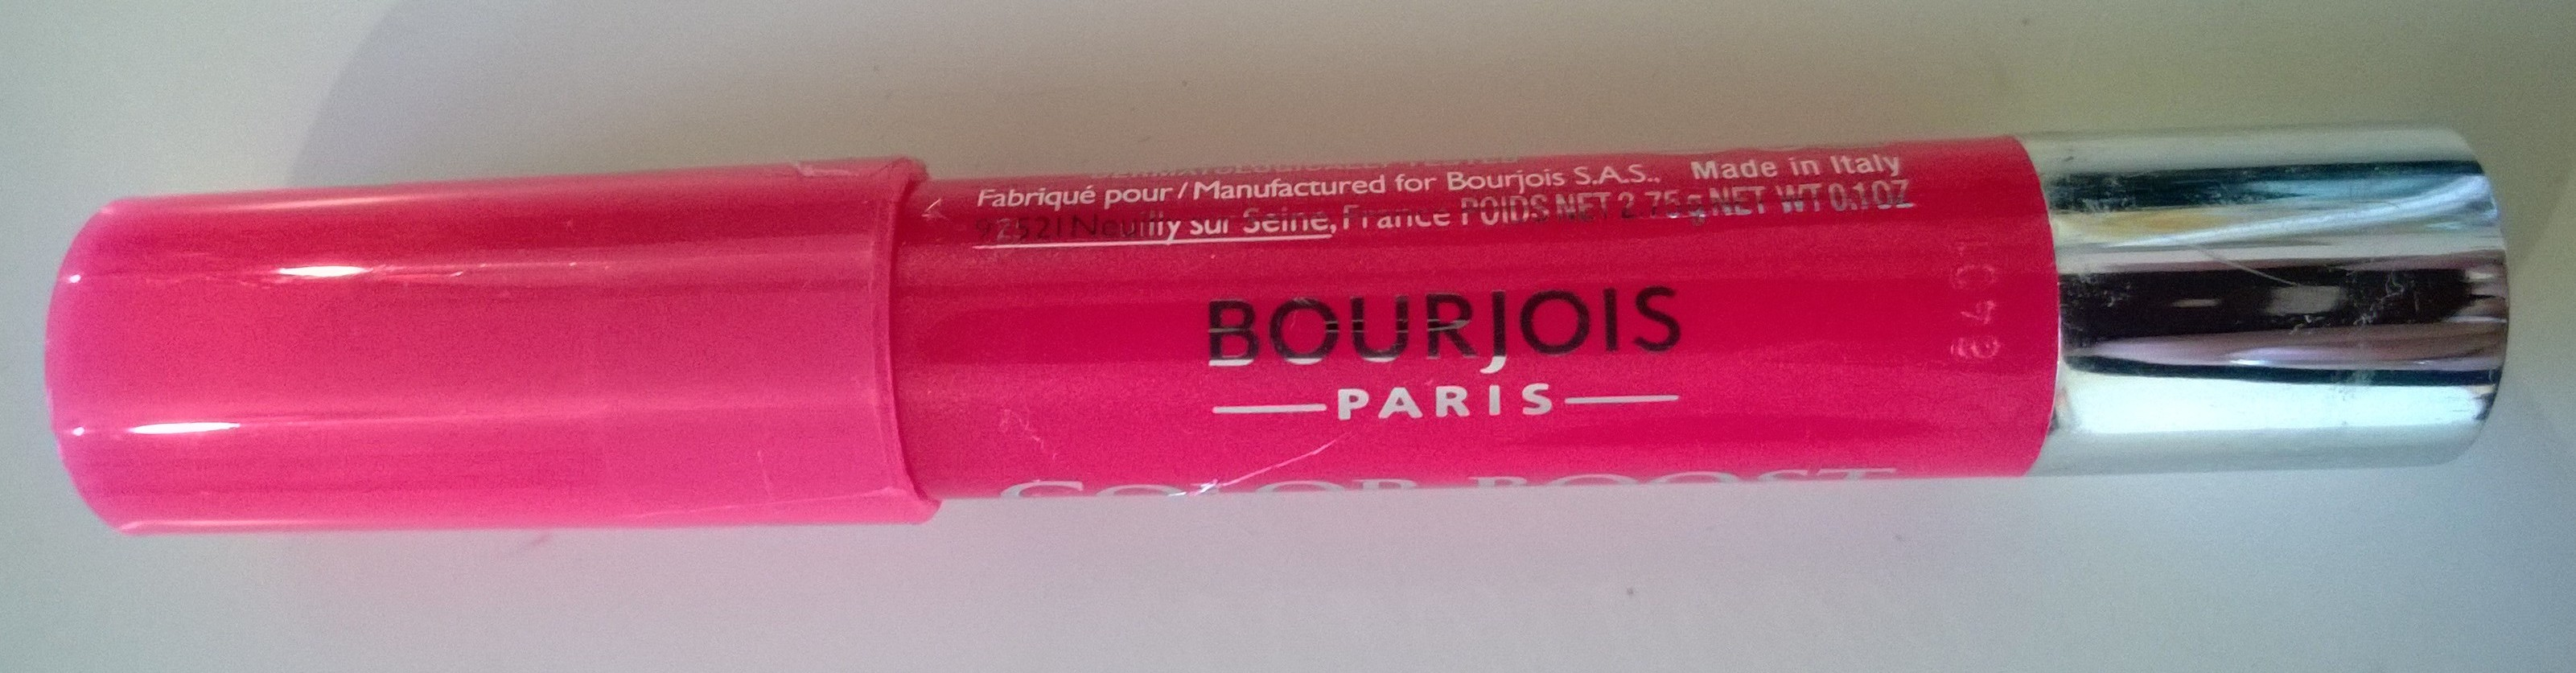 BOURJOIS COLOR BOOST IN FUCHSIA LIBRE: REVIEW AND PICTURES | Ah Sure ...